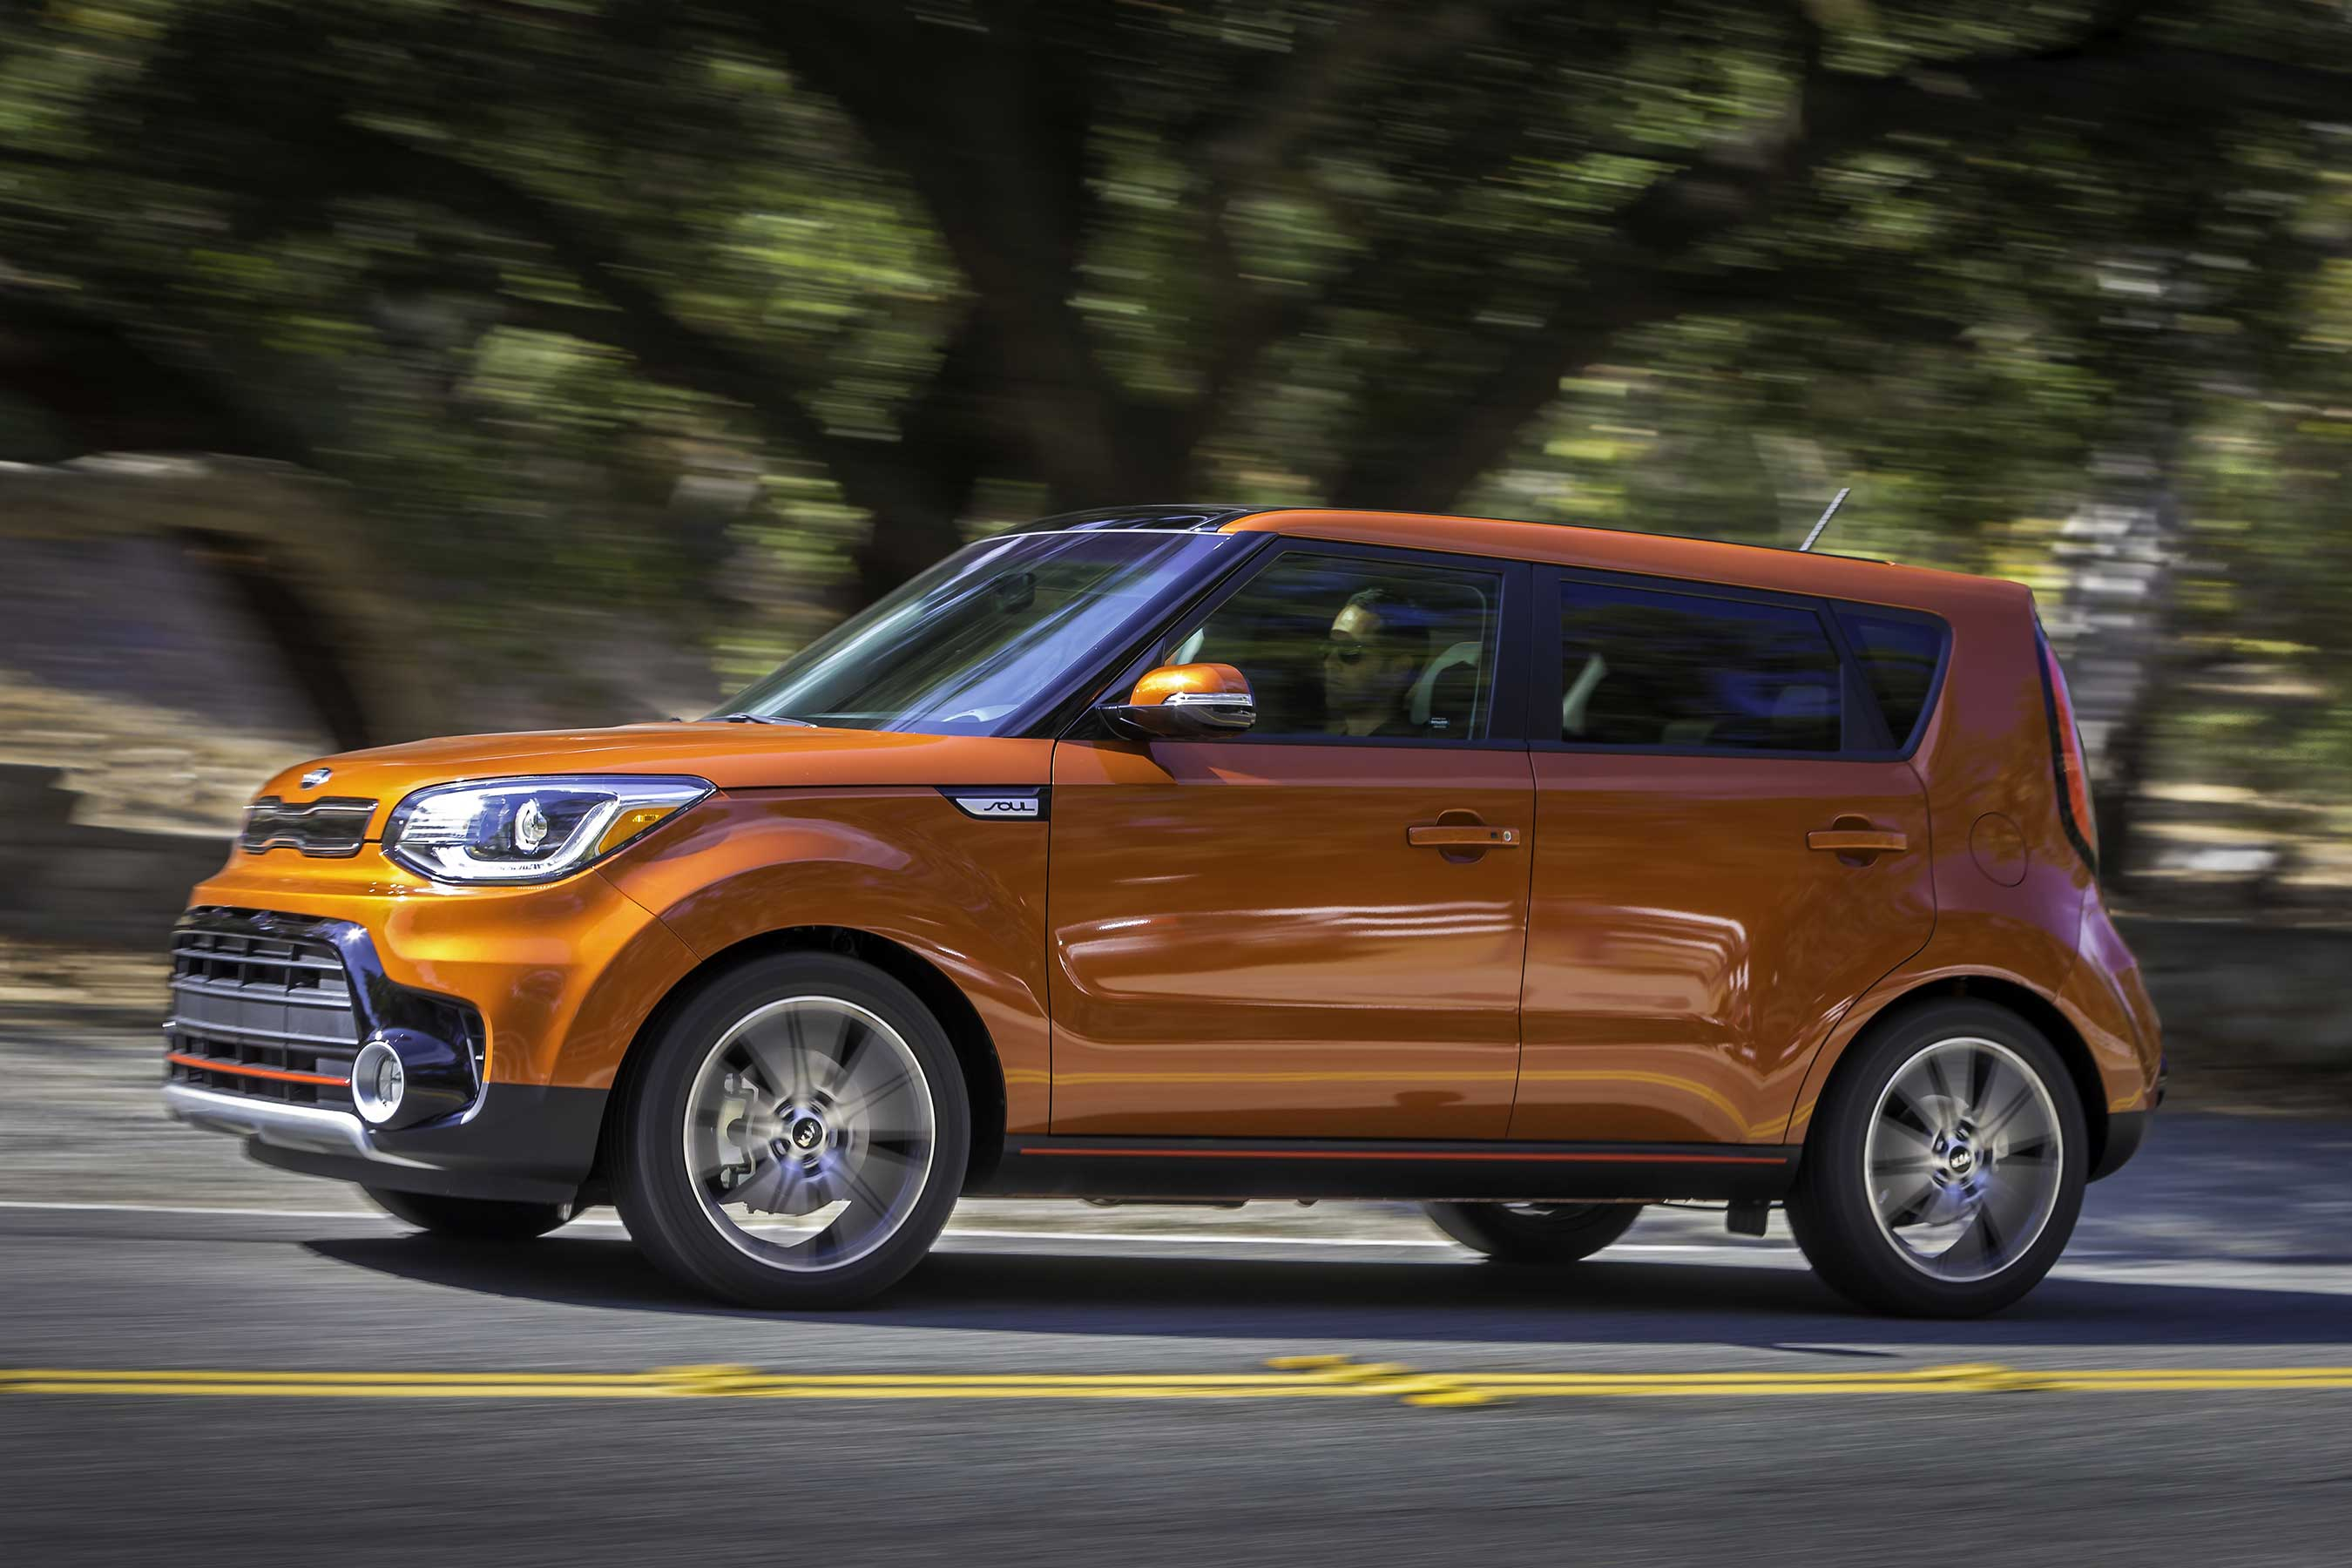 Kia Soul captures the J.D. Power Initial Quality Study (IQS) award for the third consecutive year in the Compact Multi-Purpose Vehicle segment.